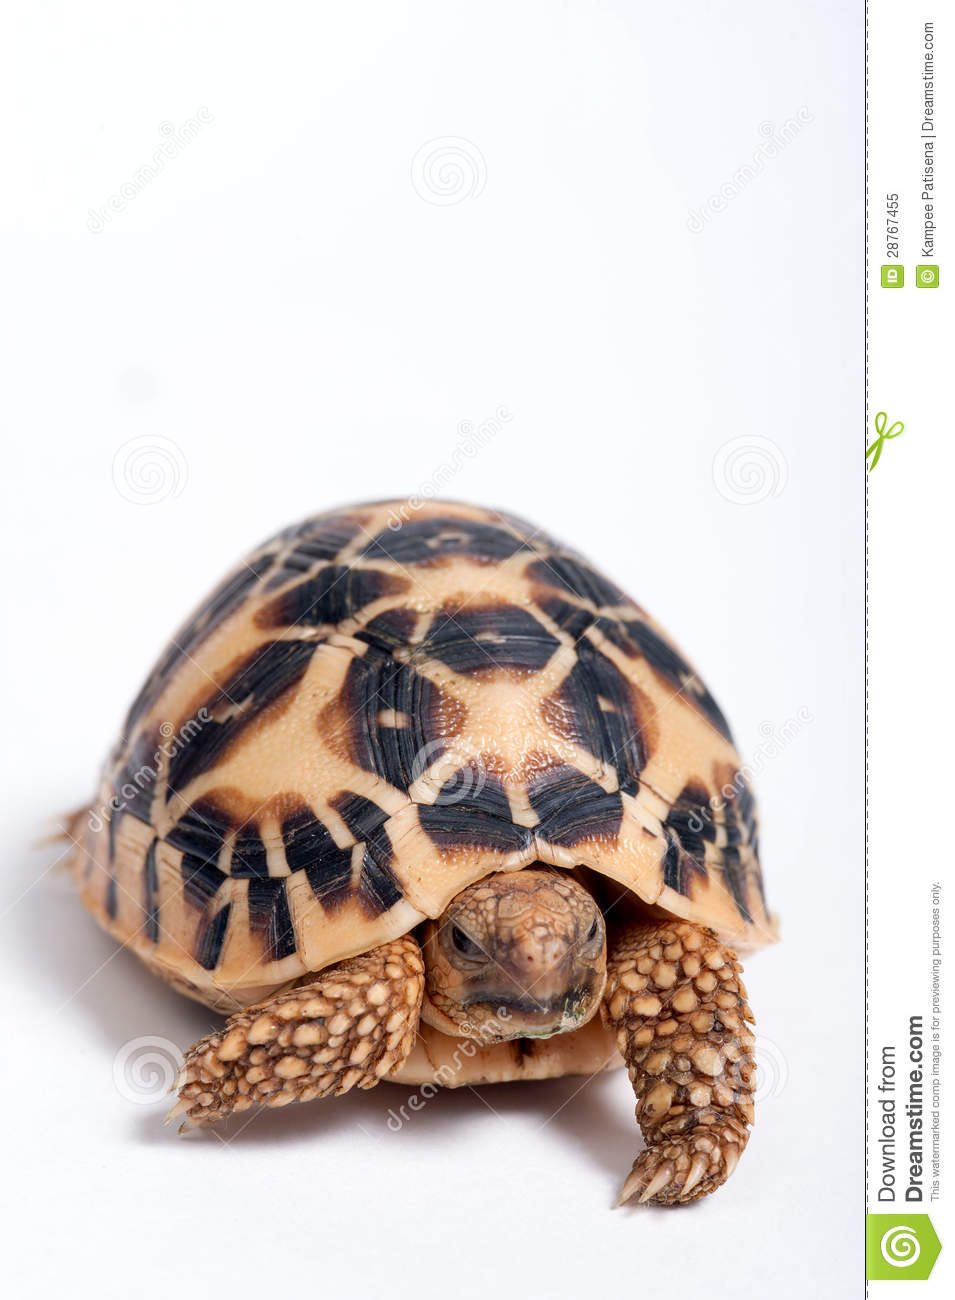 Indian Star Tortoise clipart #7, Download drawings